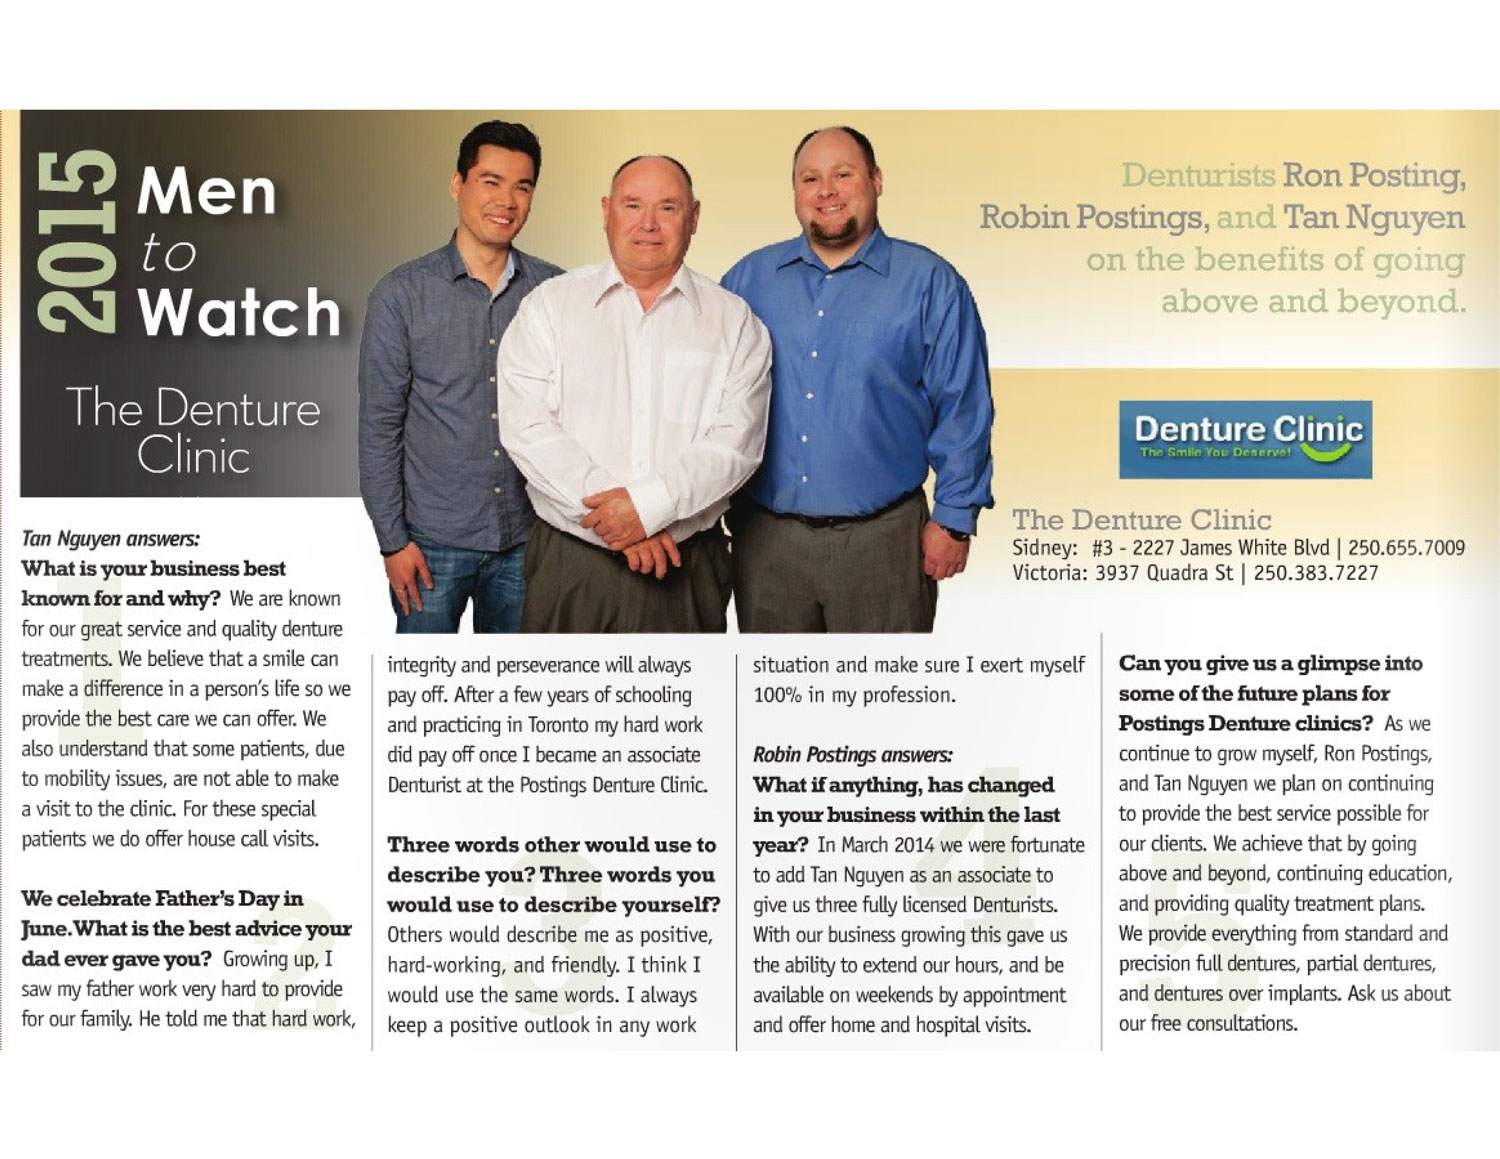 2015 Men to Watch: Postings Denture Clinics